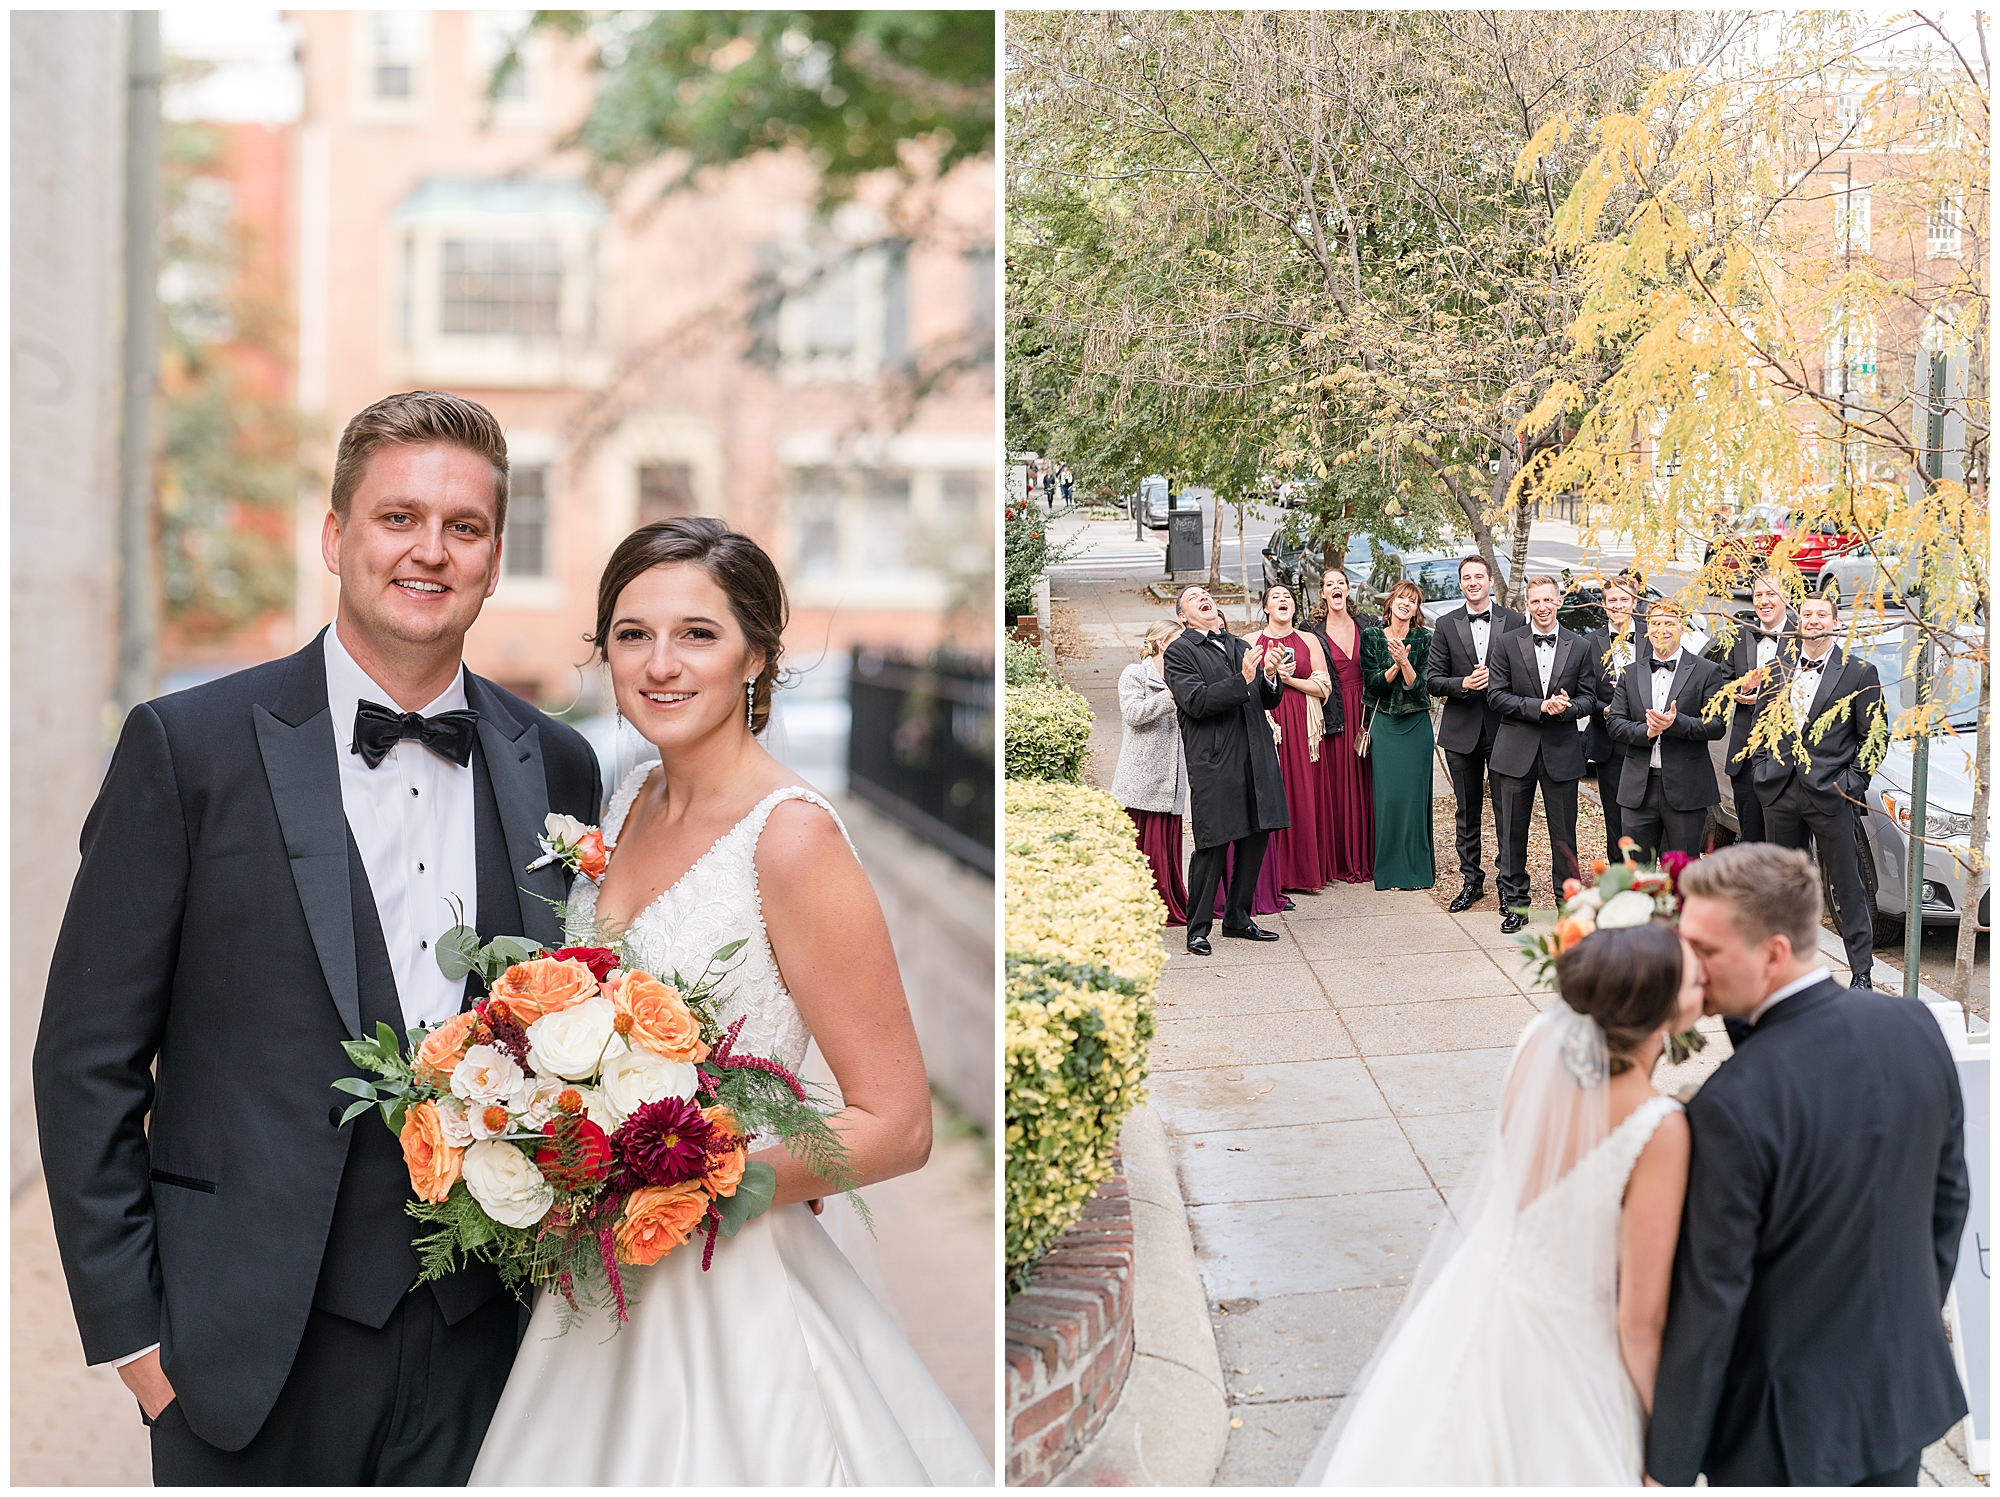 In one photo a bride and groom stand next to each other and smile at the camera. In the second photo, a bride and groom face a group of happy, cheering family and friends during their Washington DC wedding.